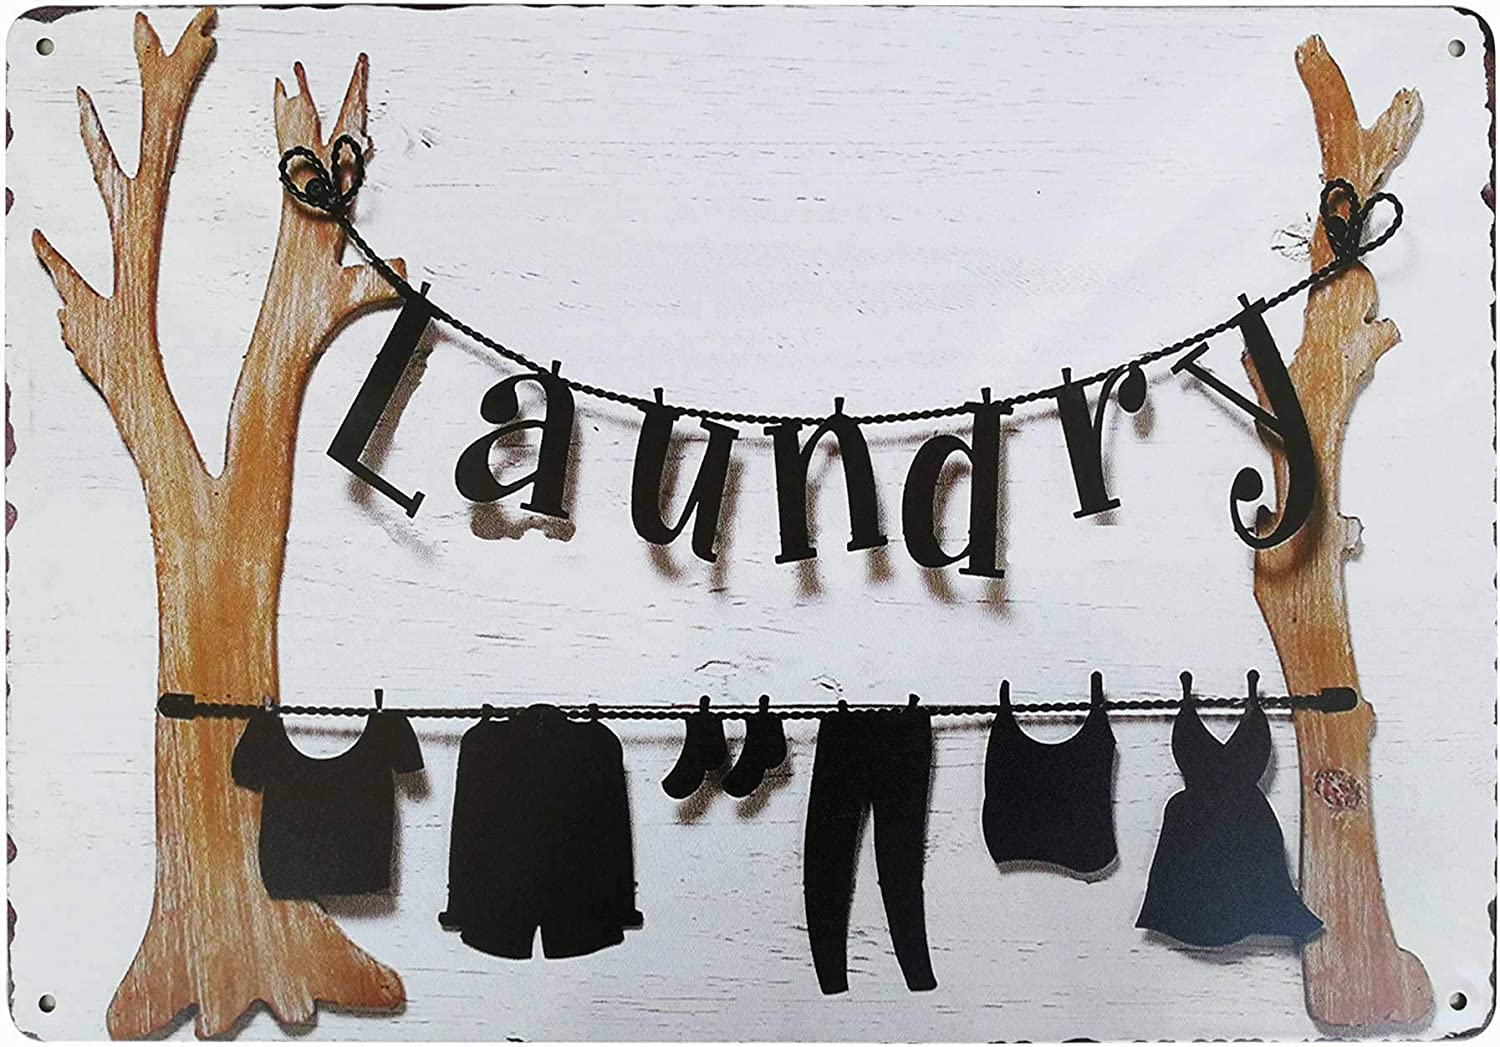 PXIYOU Novelty Dry Clothes Laundry Vintage Retro Metal Sign Home Bathroom Laundry Room Decor Wash Room Signs Farmhouse Country Home Decor 8X12Inch